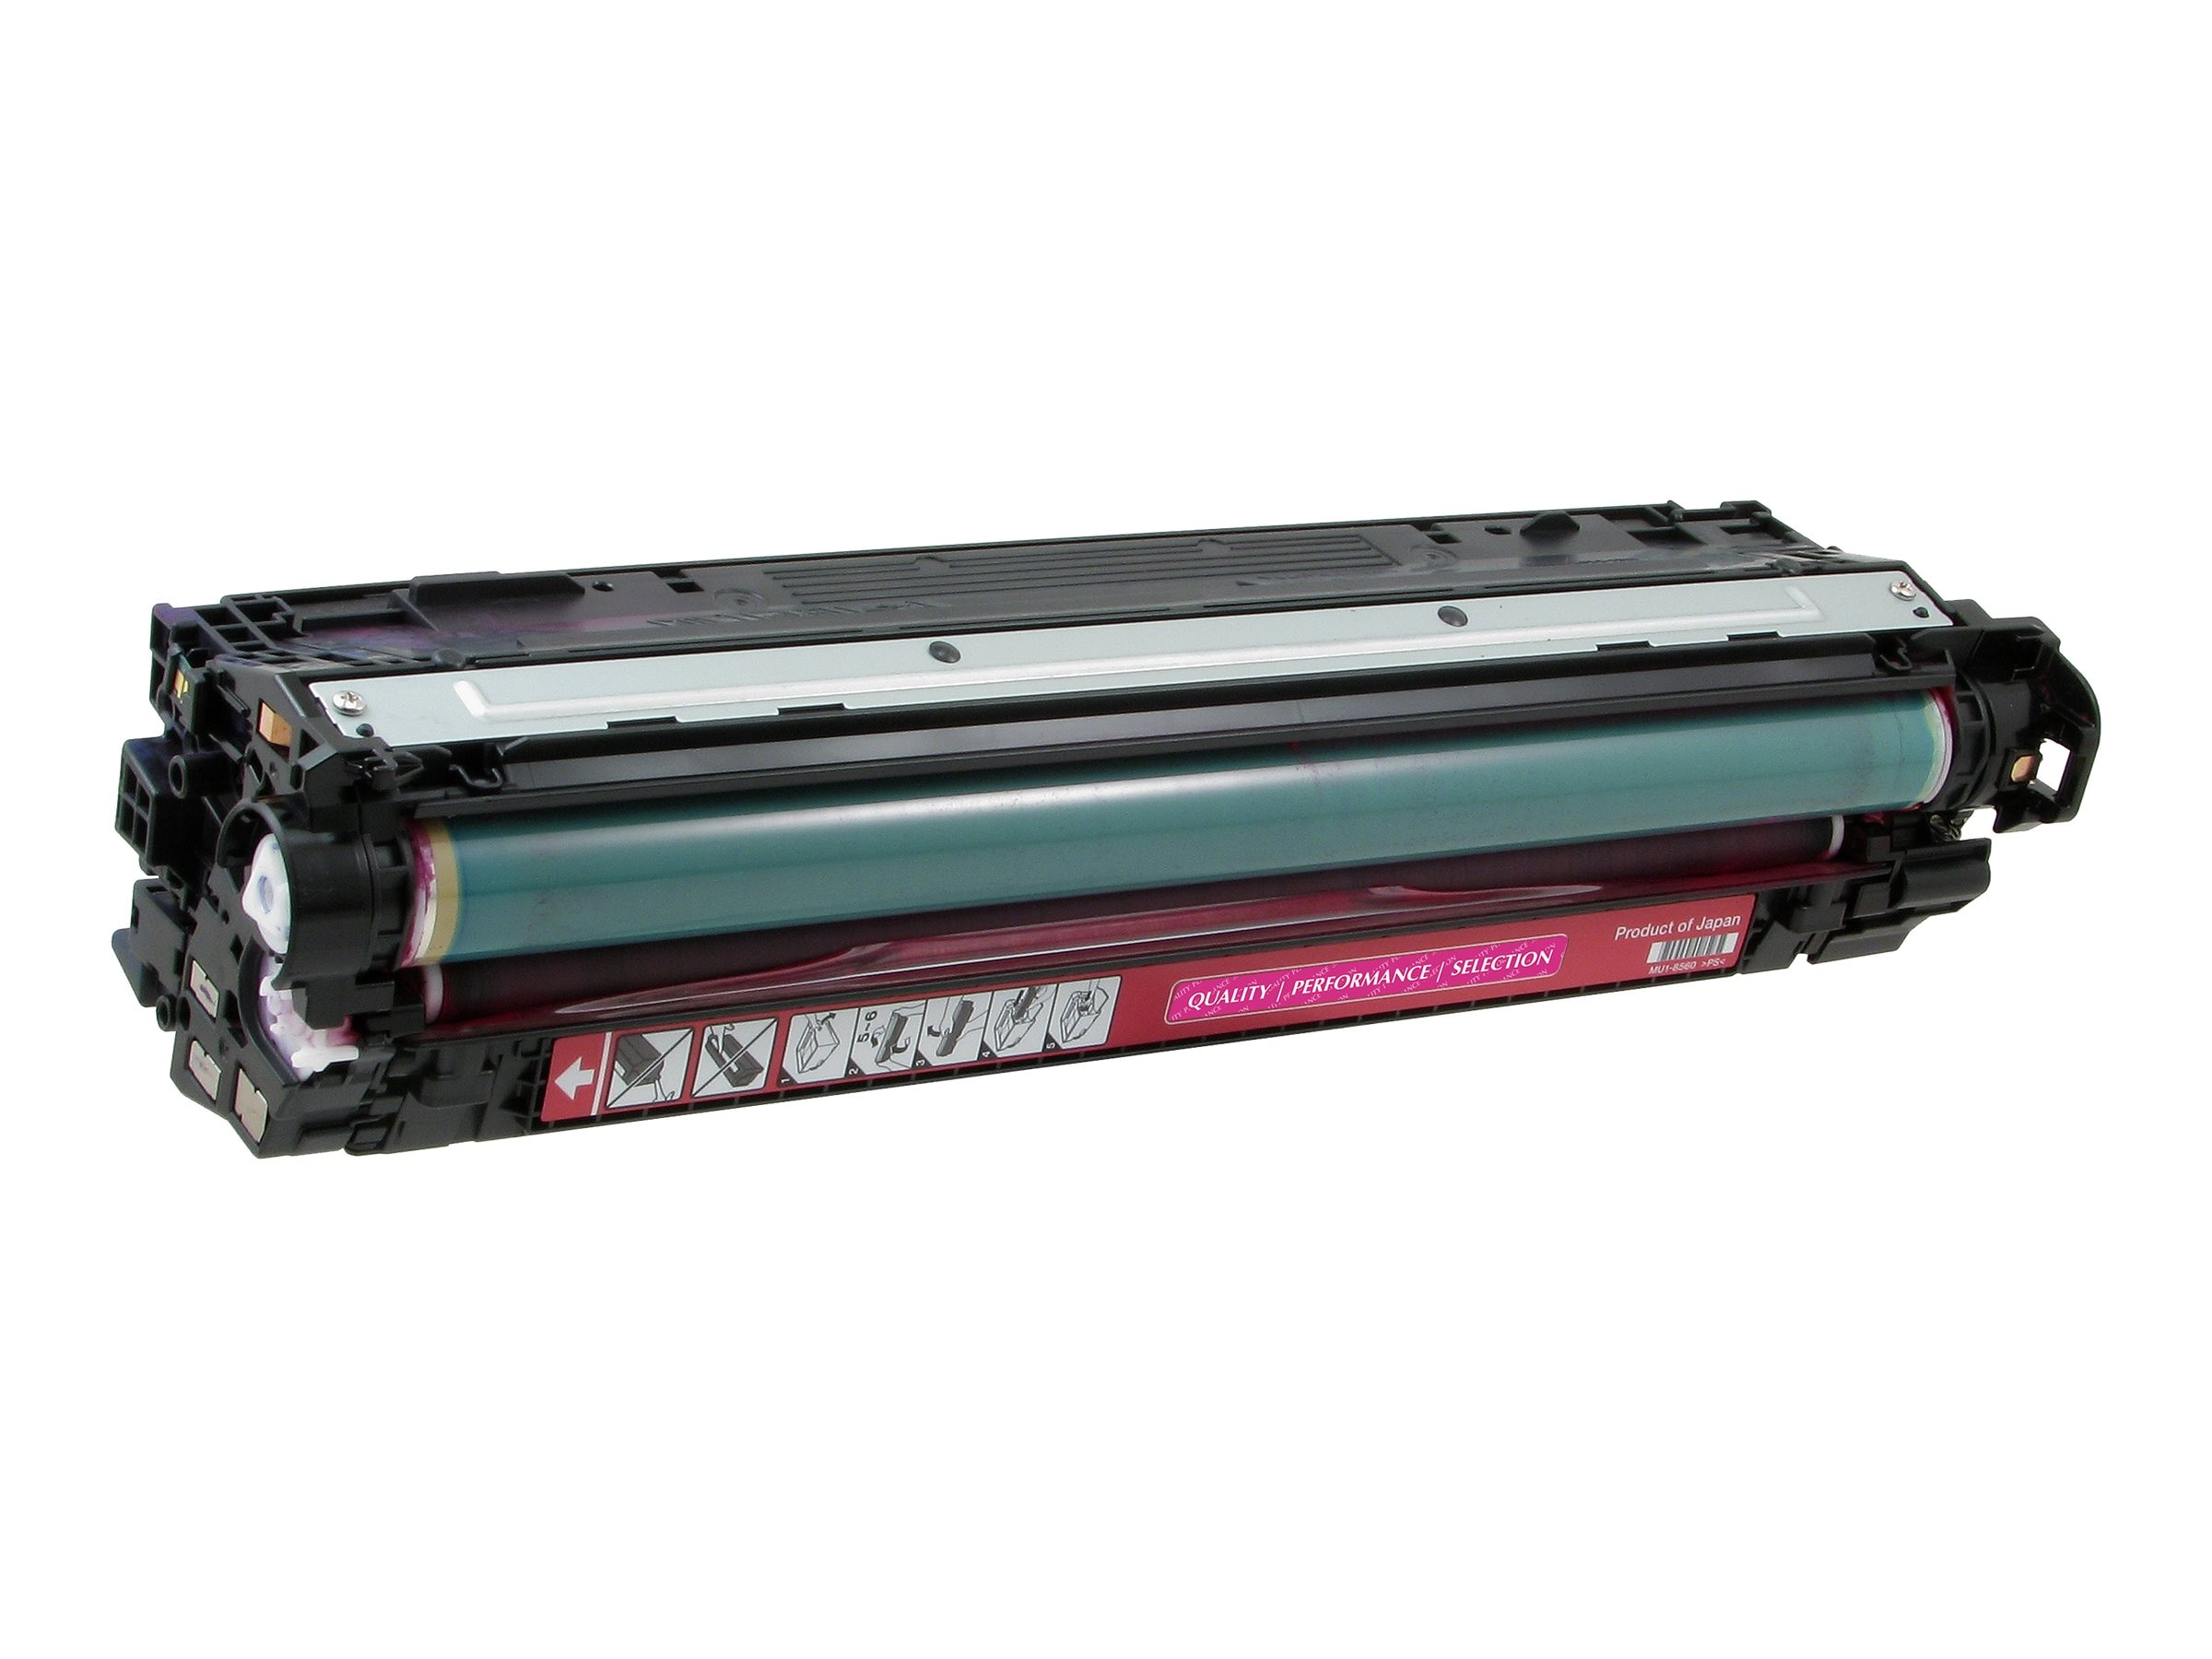 V7 CE743A Magenta Toner Cartridge for HP Color LaserJet P5220